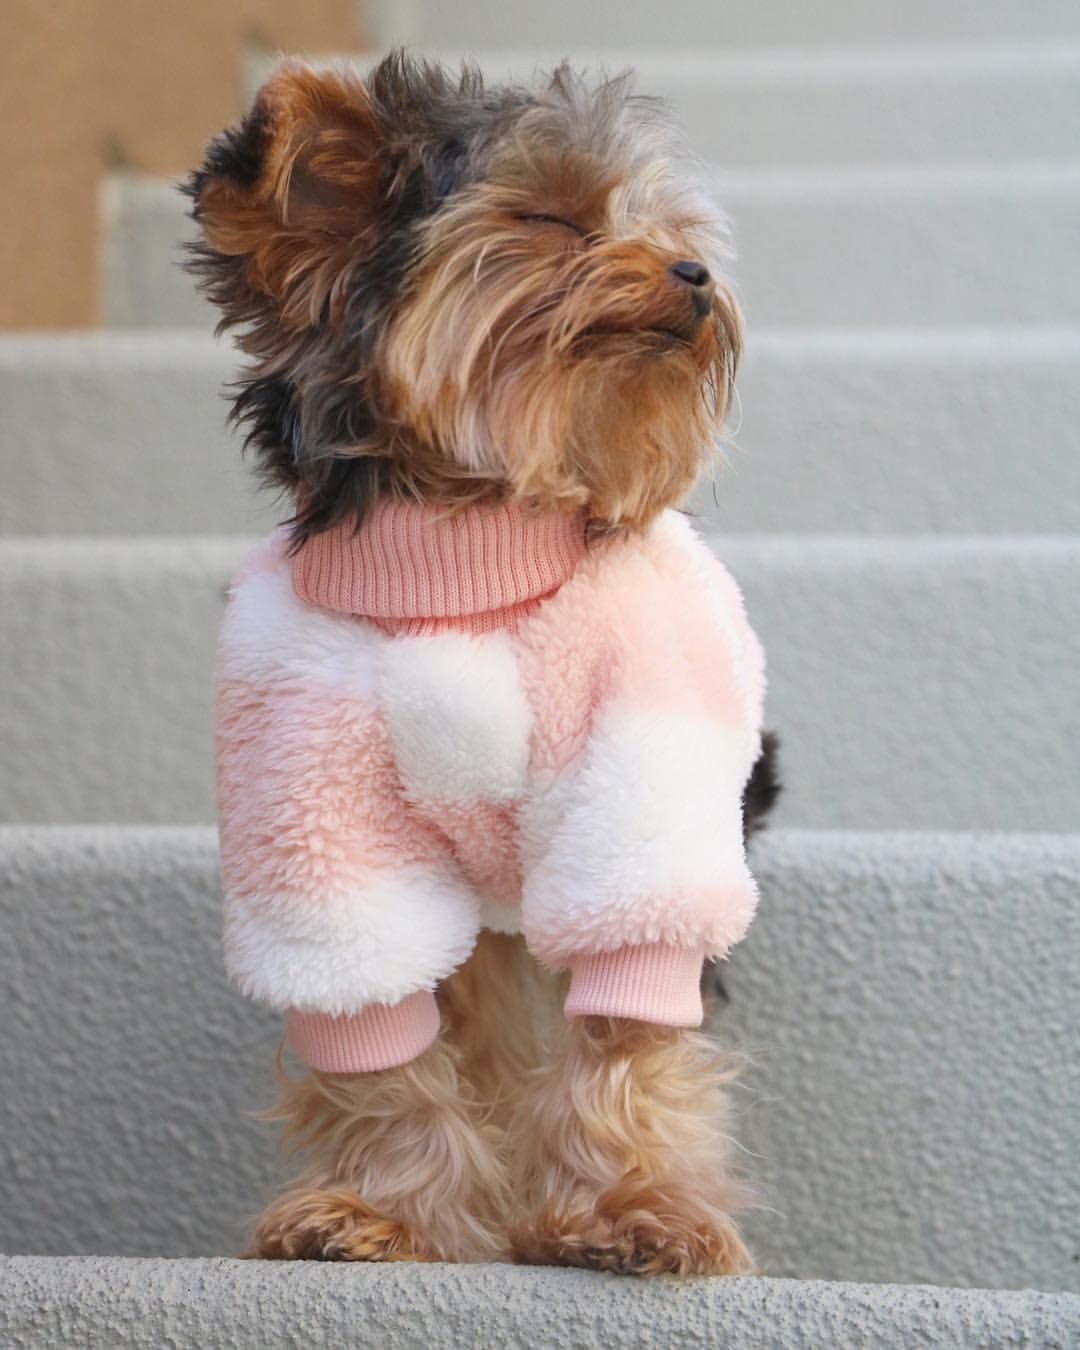 4 135 Likes 127 Comments Napa The Yorkie Napatheyorkie On Instagram When It S Sweater Weather Yorkshire Terrier Puppies Yorkie Puppy Yorkshire Terrier